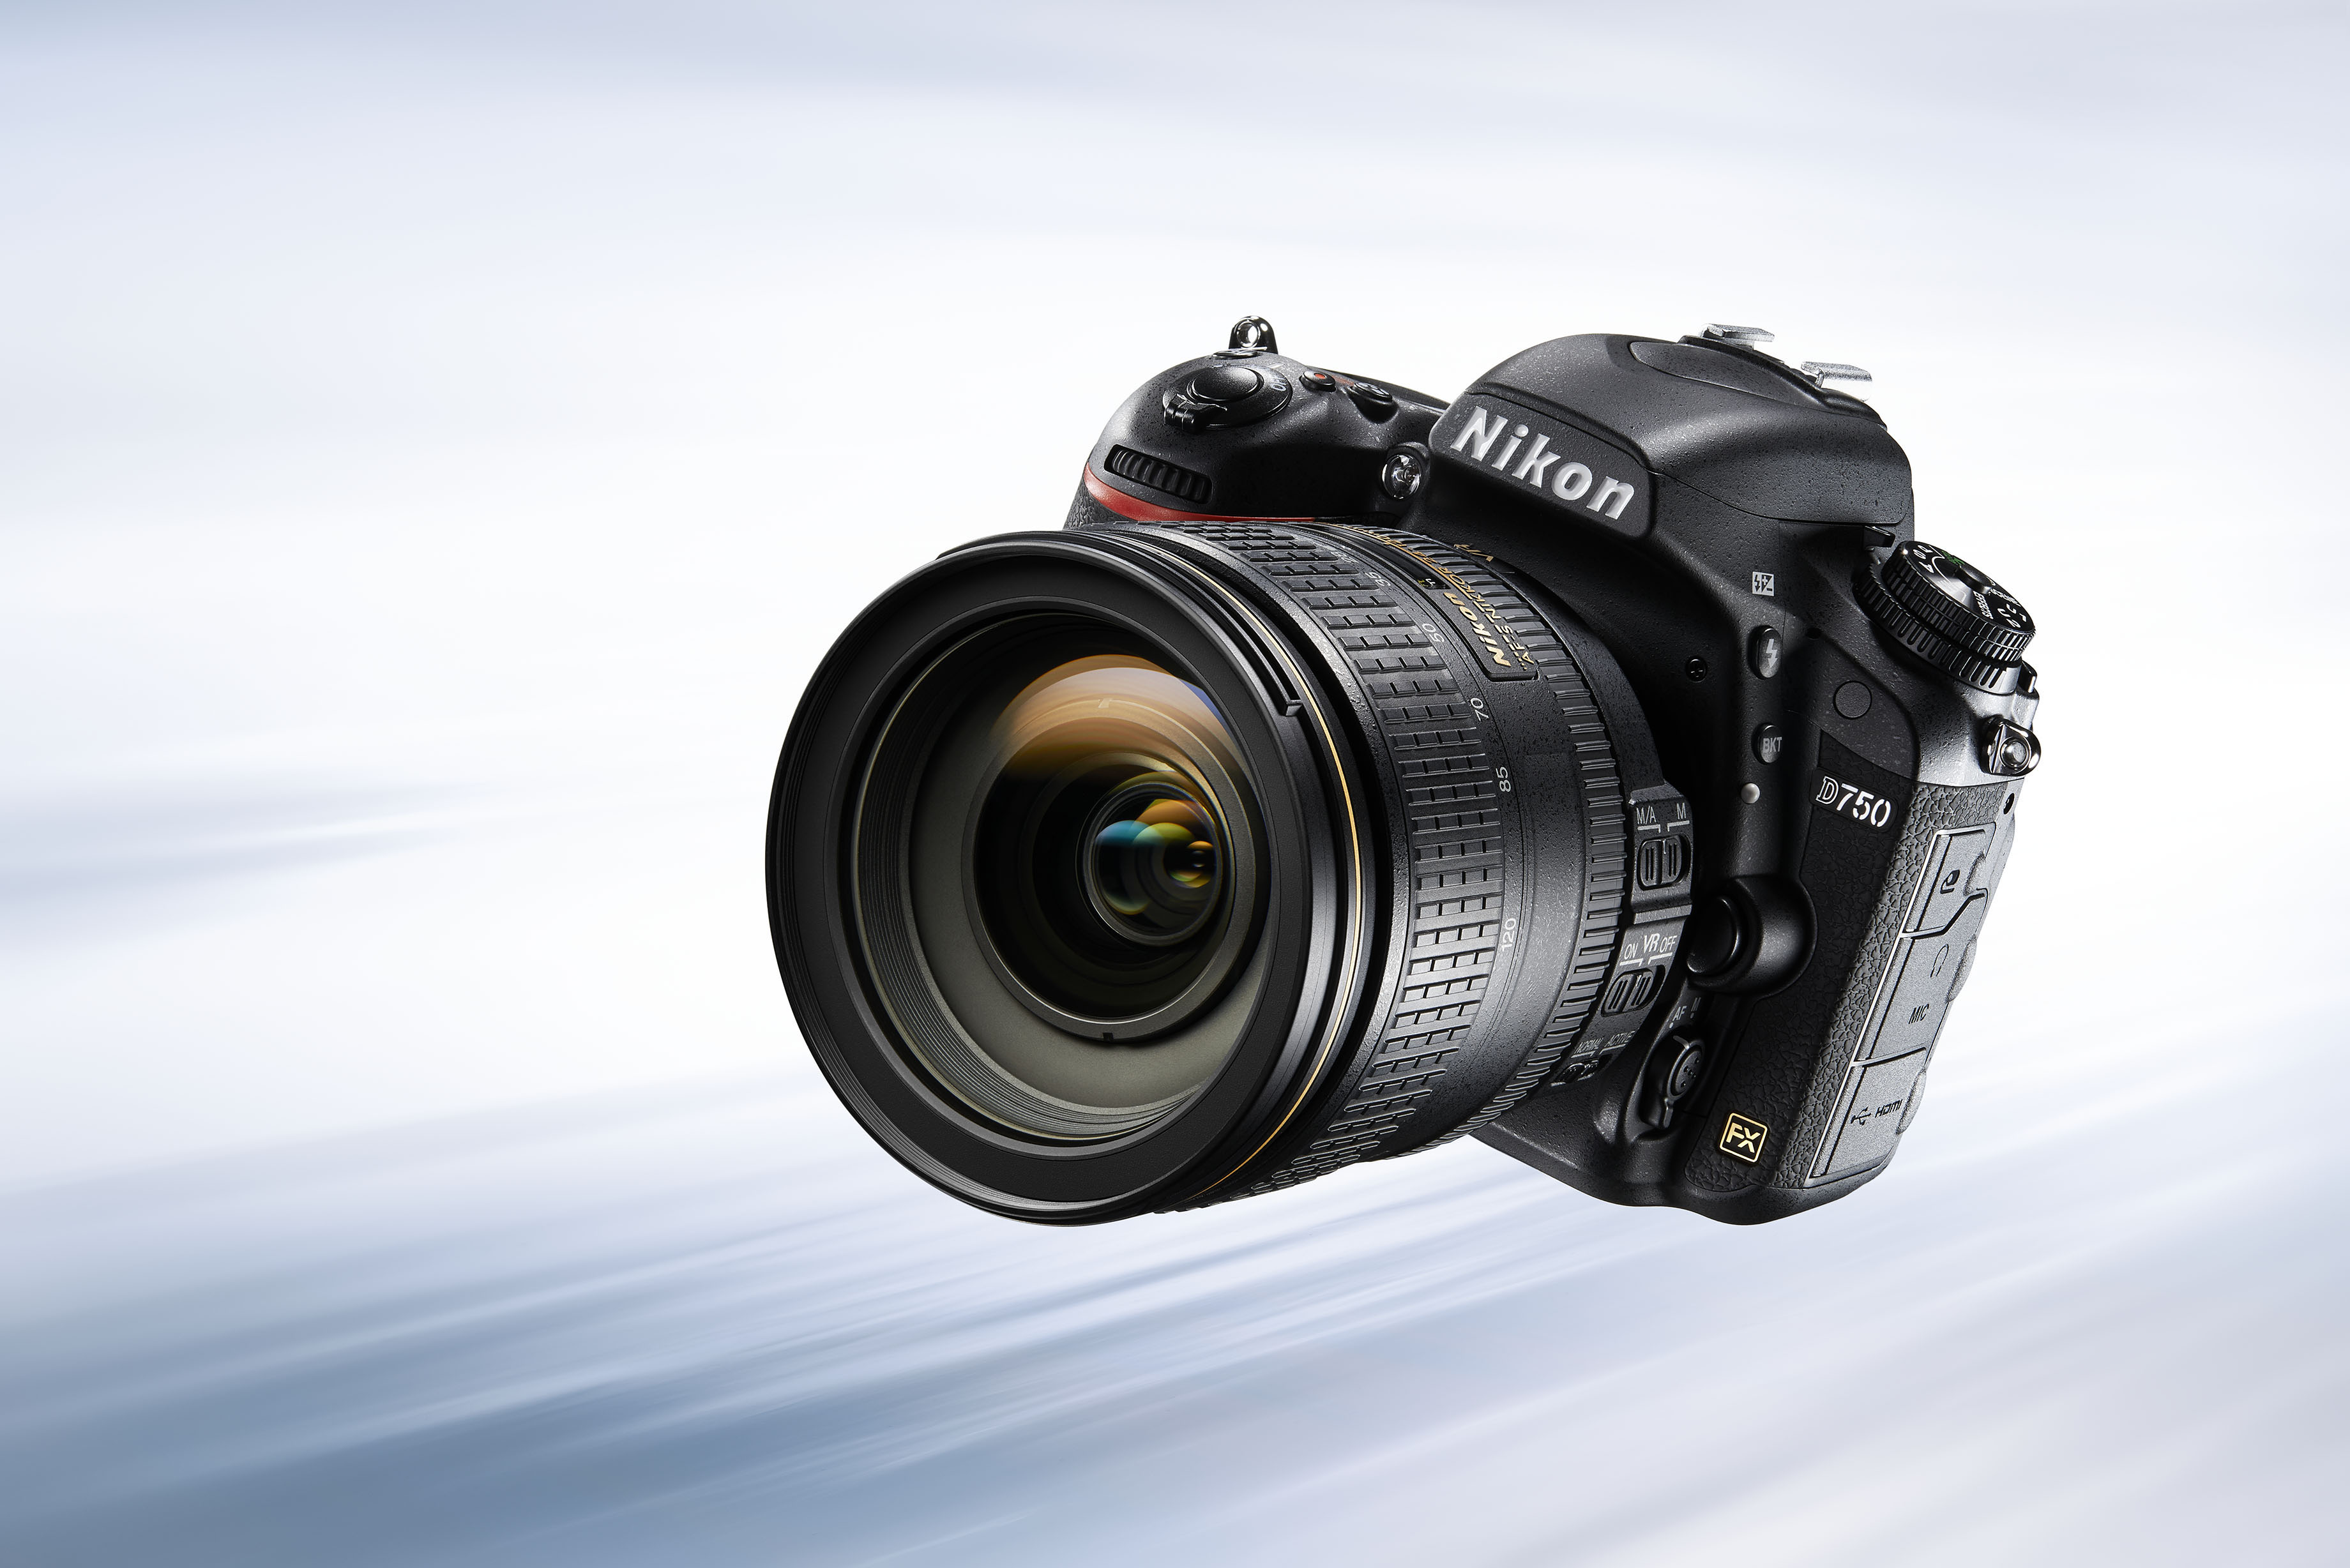 Hands on: Nikon D750 full-frame DSLR - Techgoondu Techgoondu